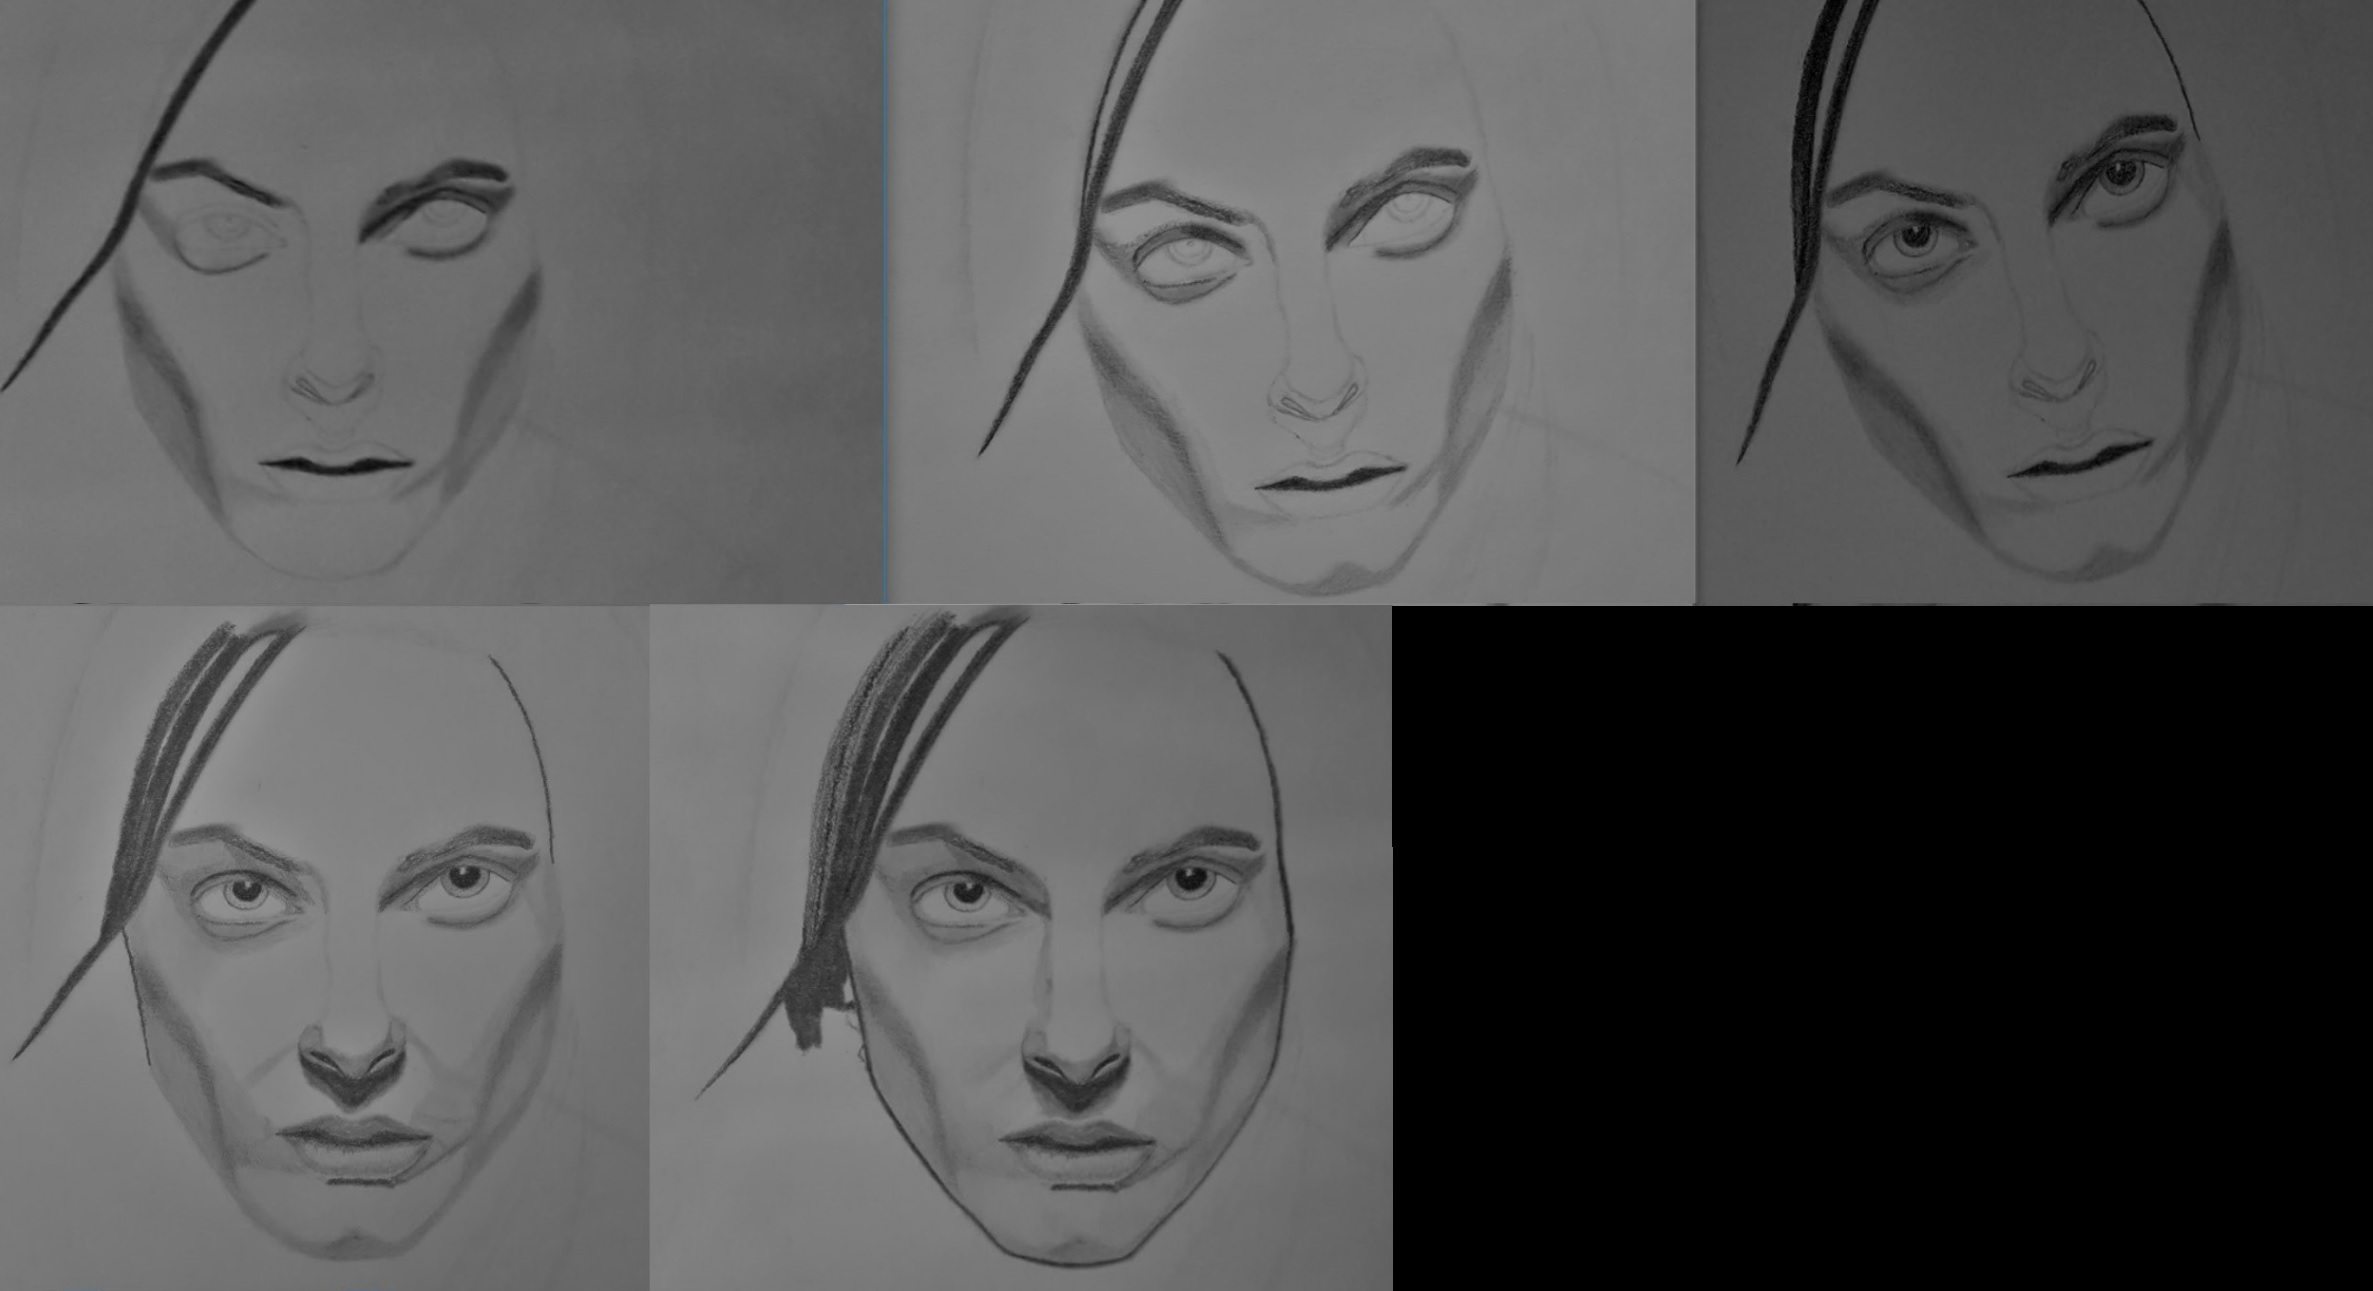 Pandorum Antje Traue realism progress exercise by kestovaari